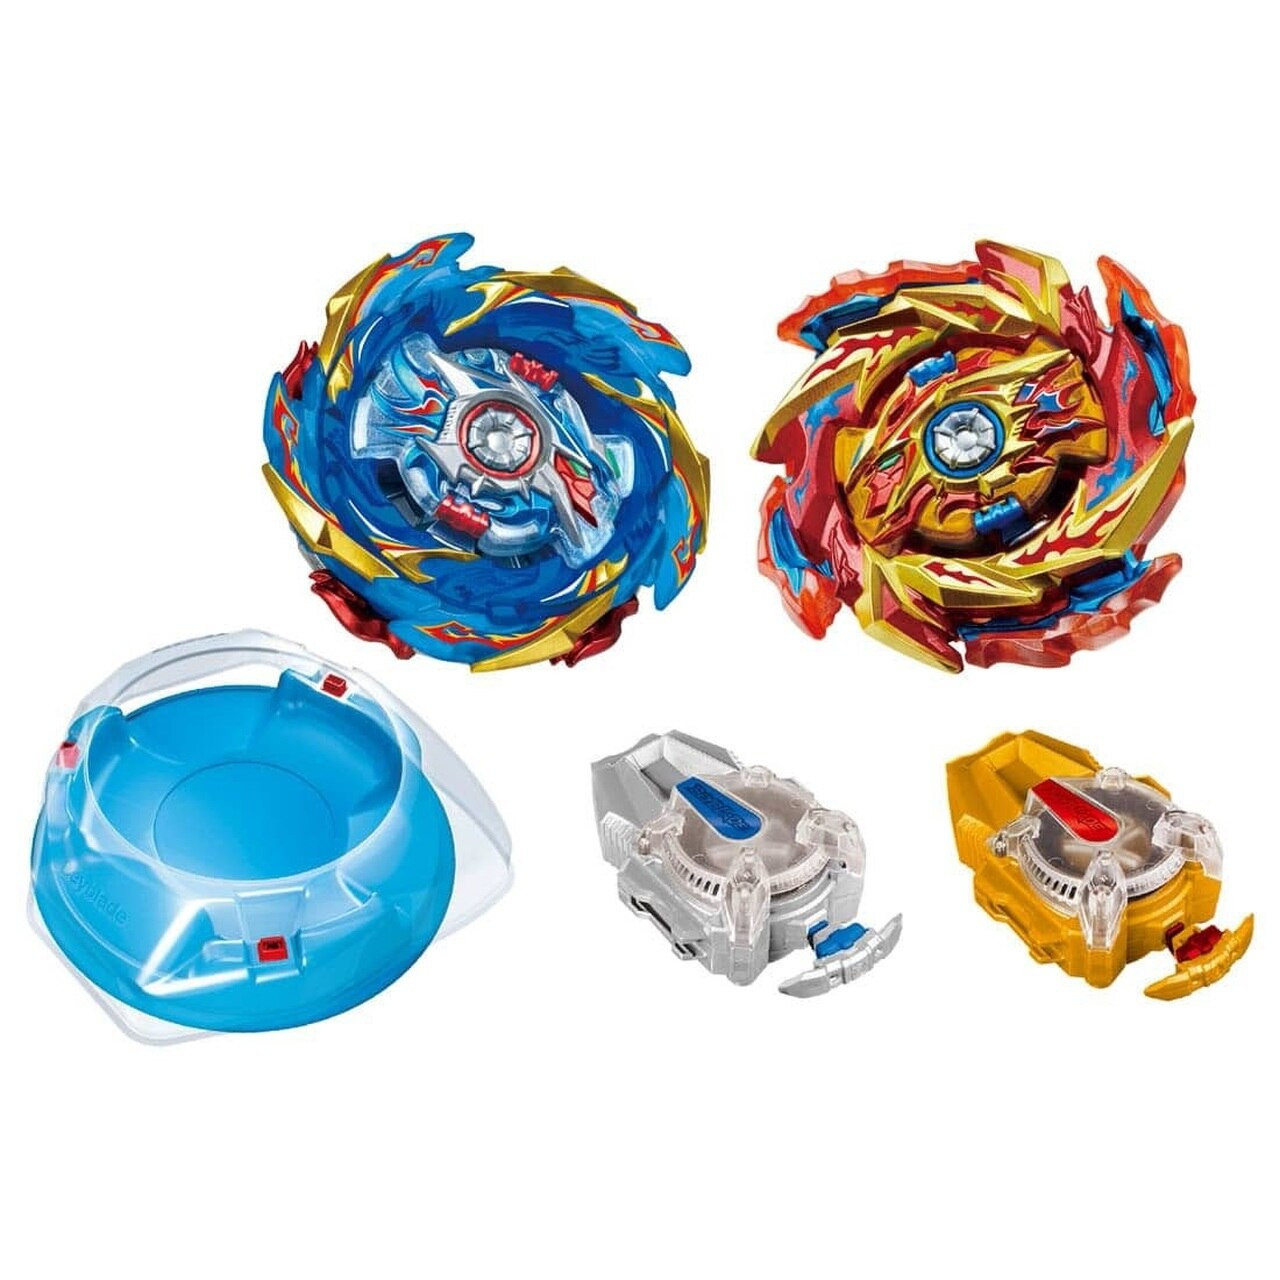 TAKARA TOMY Beyblade Burst B-174 Beyblade Limit Breaking DX Set